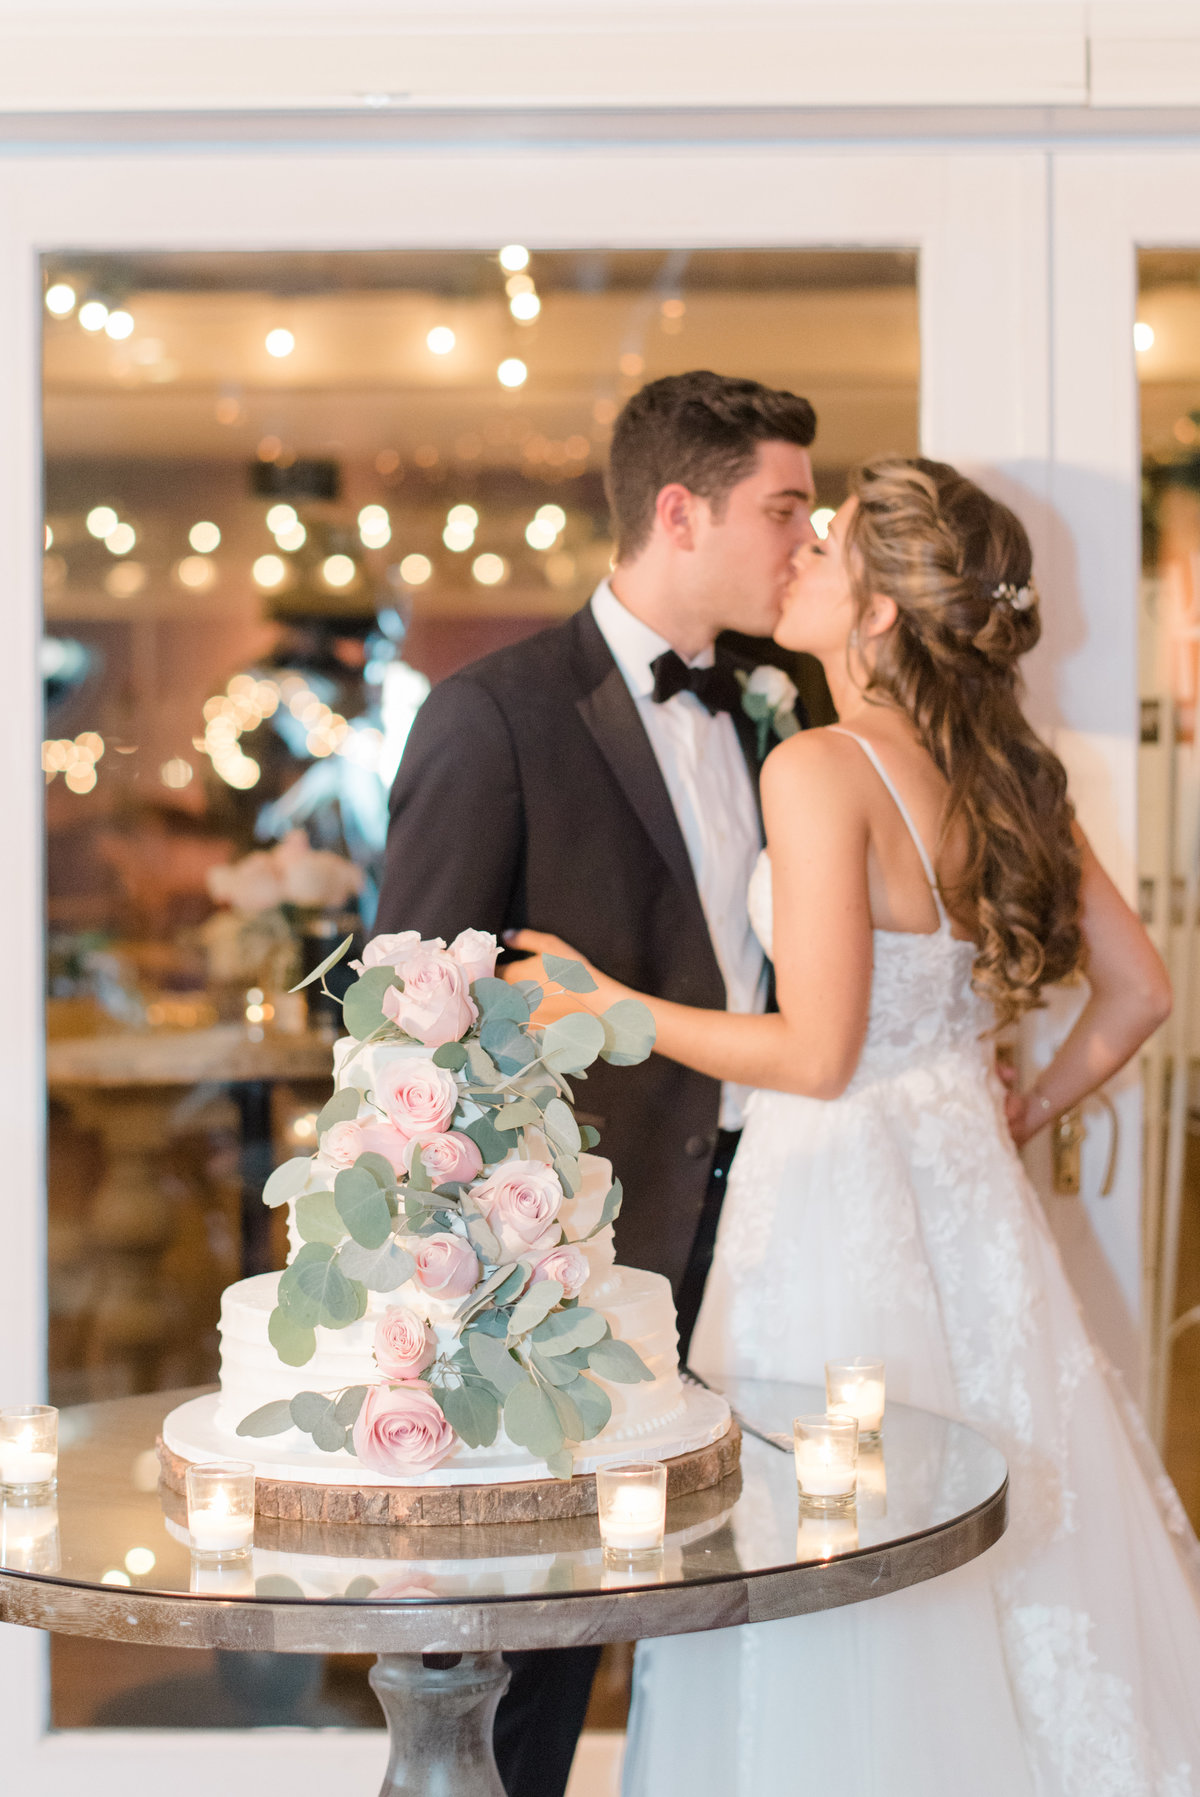 Samantha-Jesse-long-island-Wedding-photo-cutting-cake